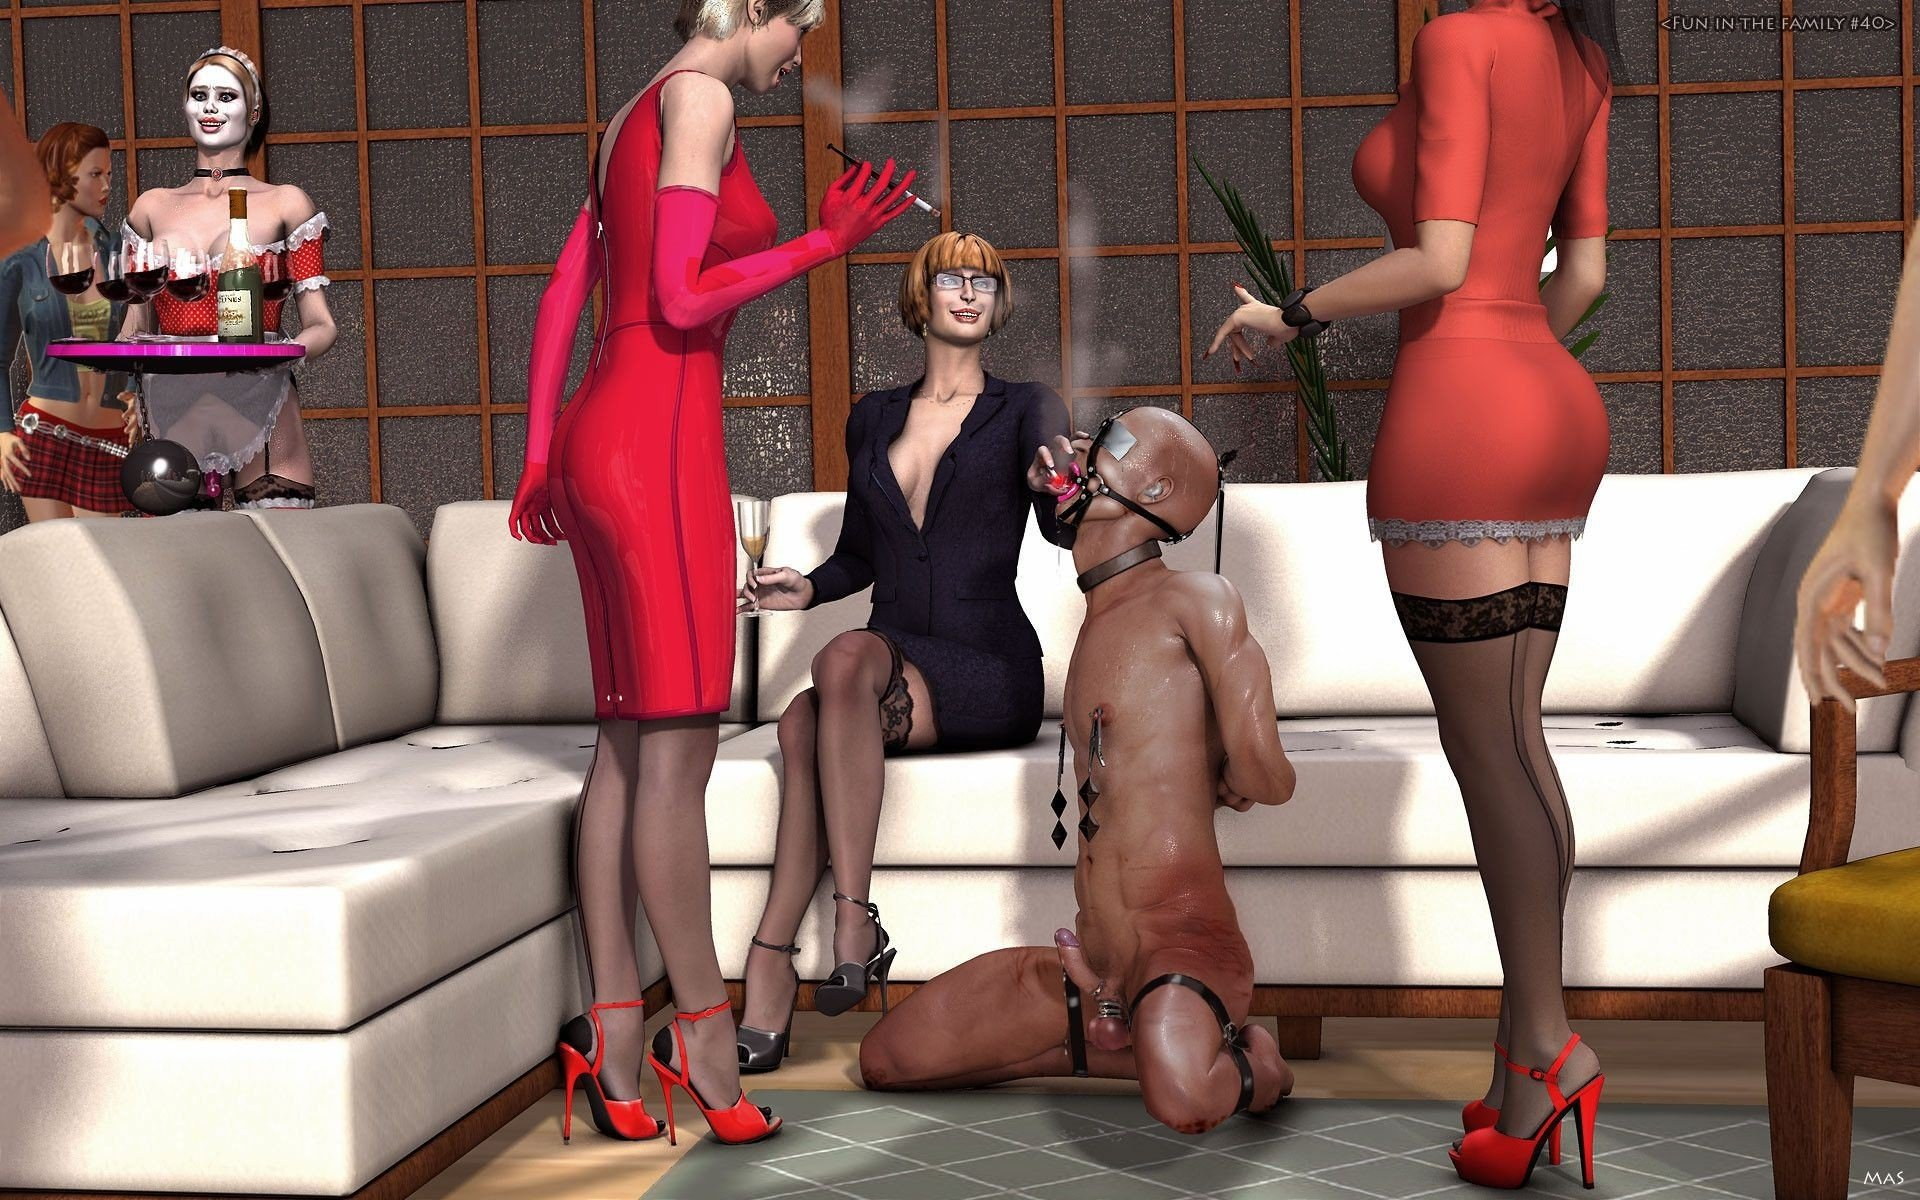 Threeway sex secondlife femdom members orgasm